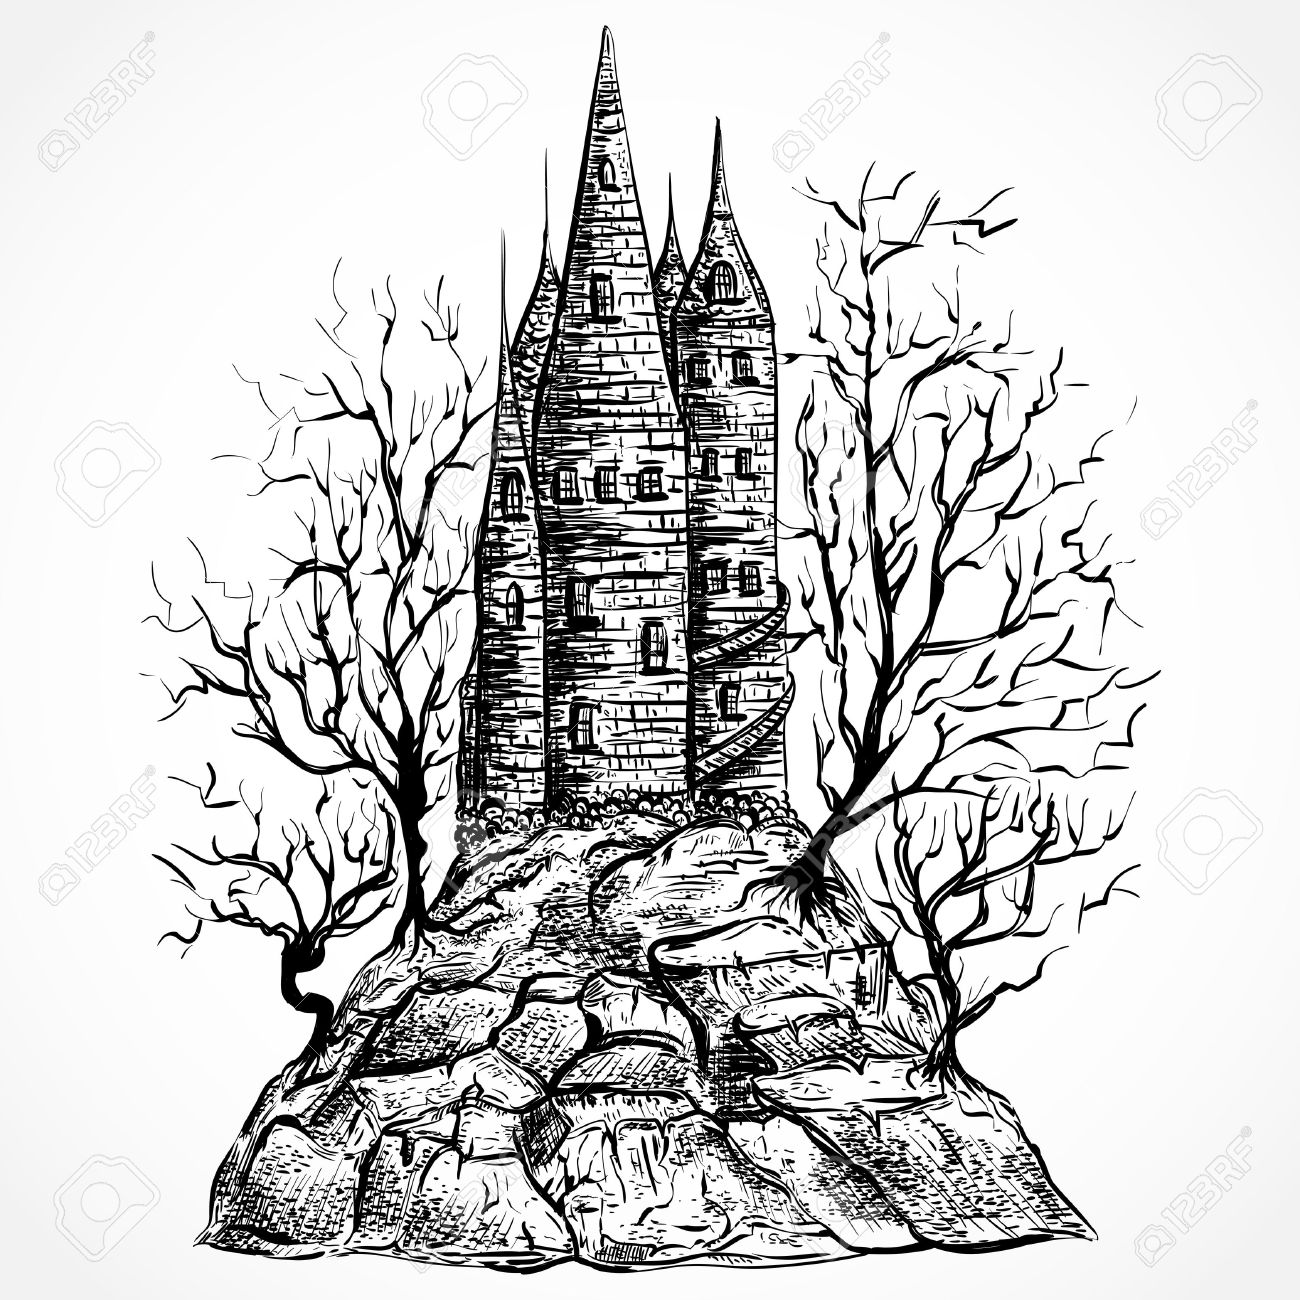 Medieval castle on rock silhouette clipart.